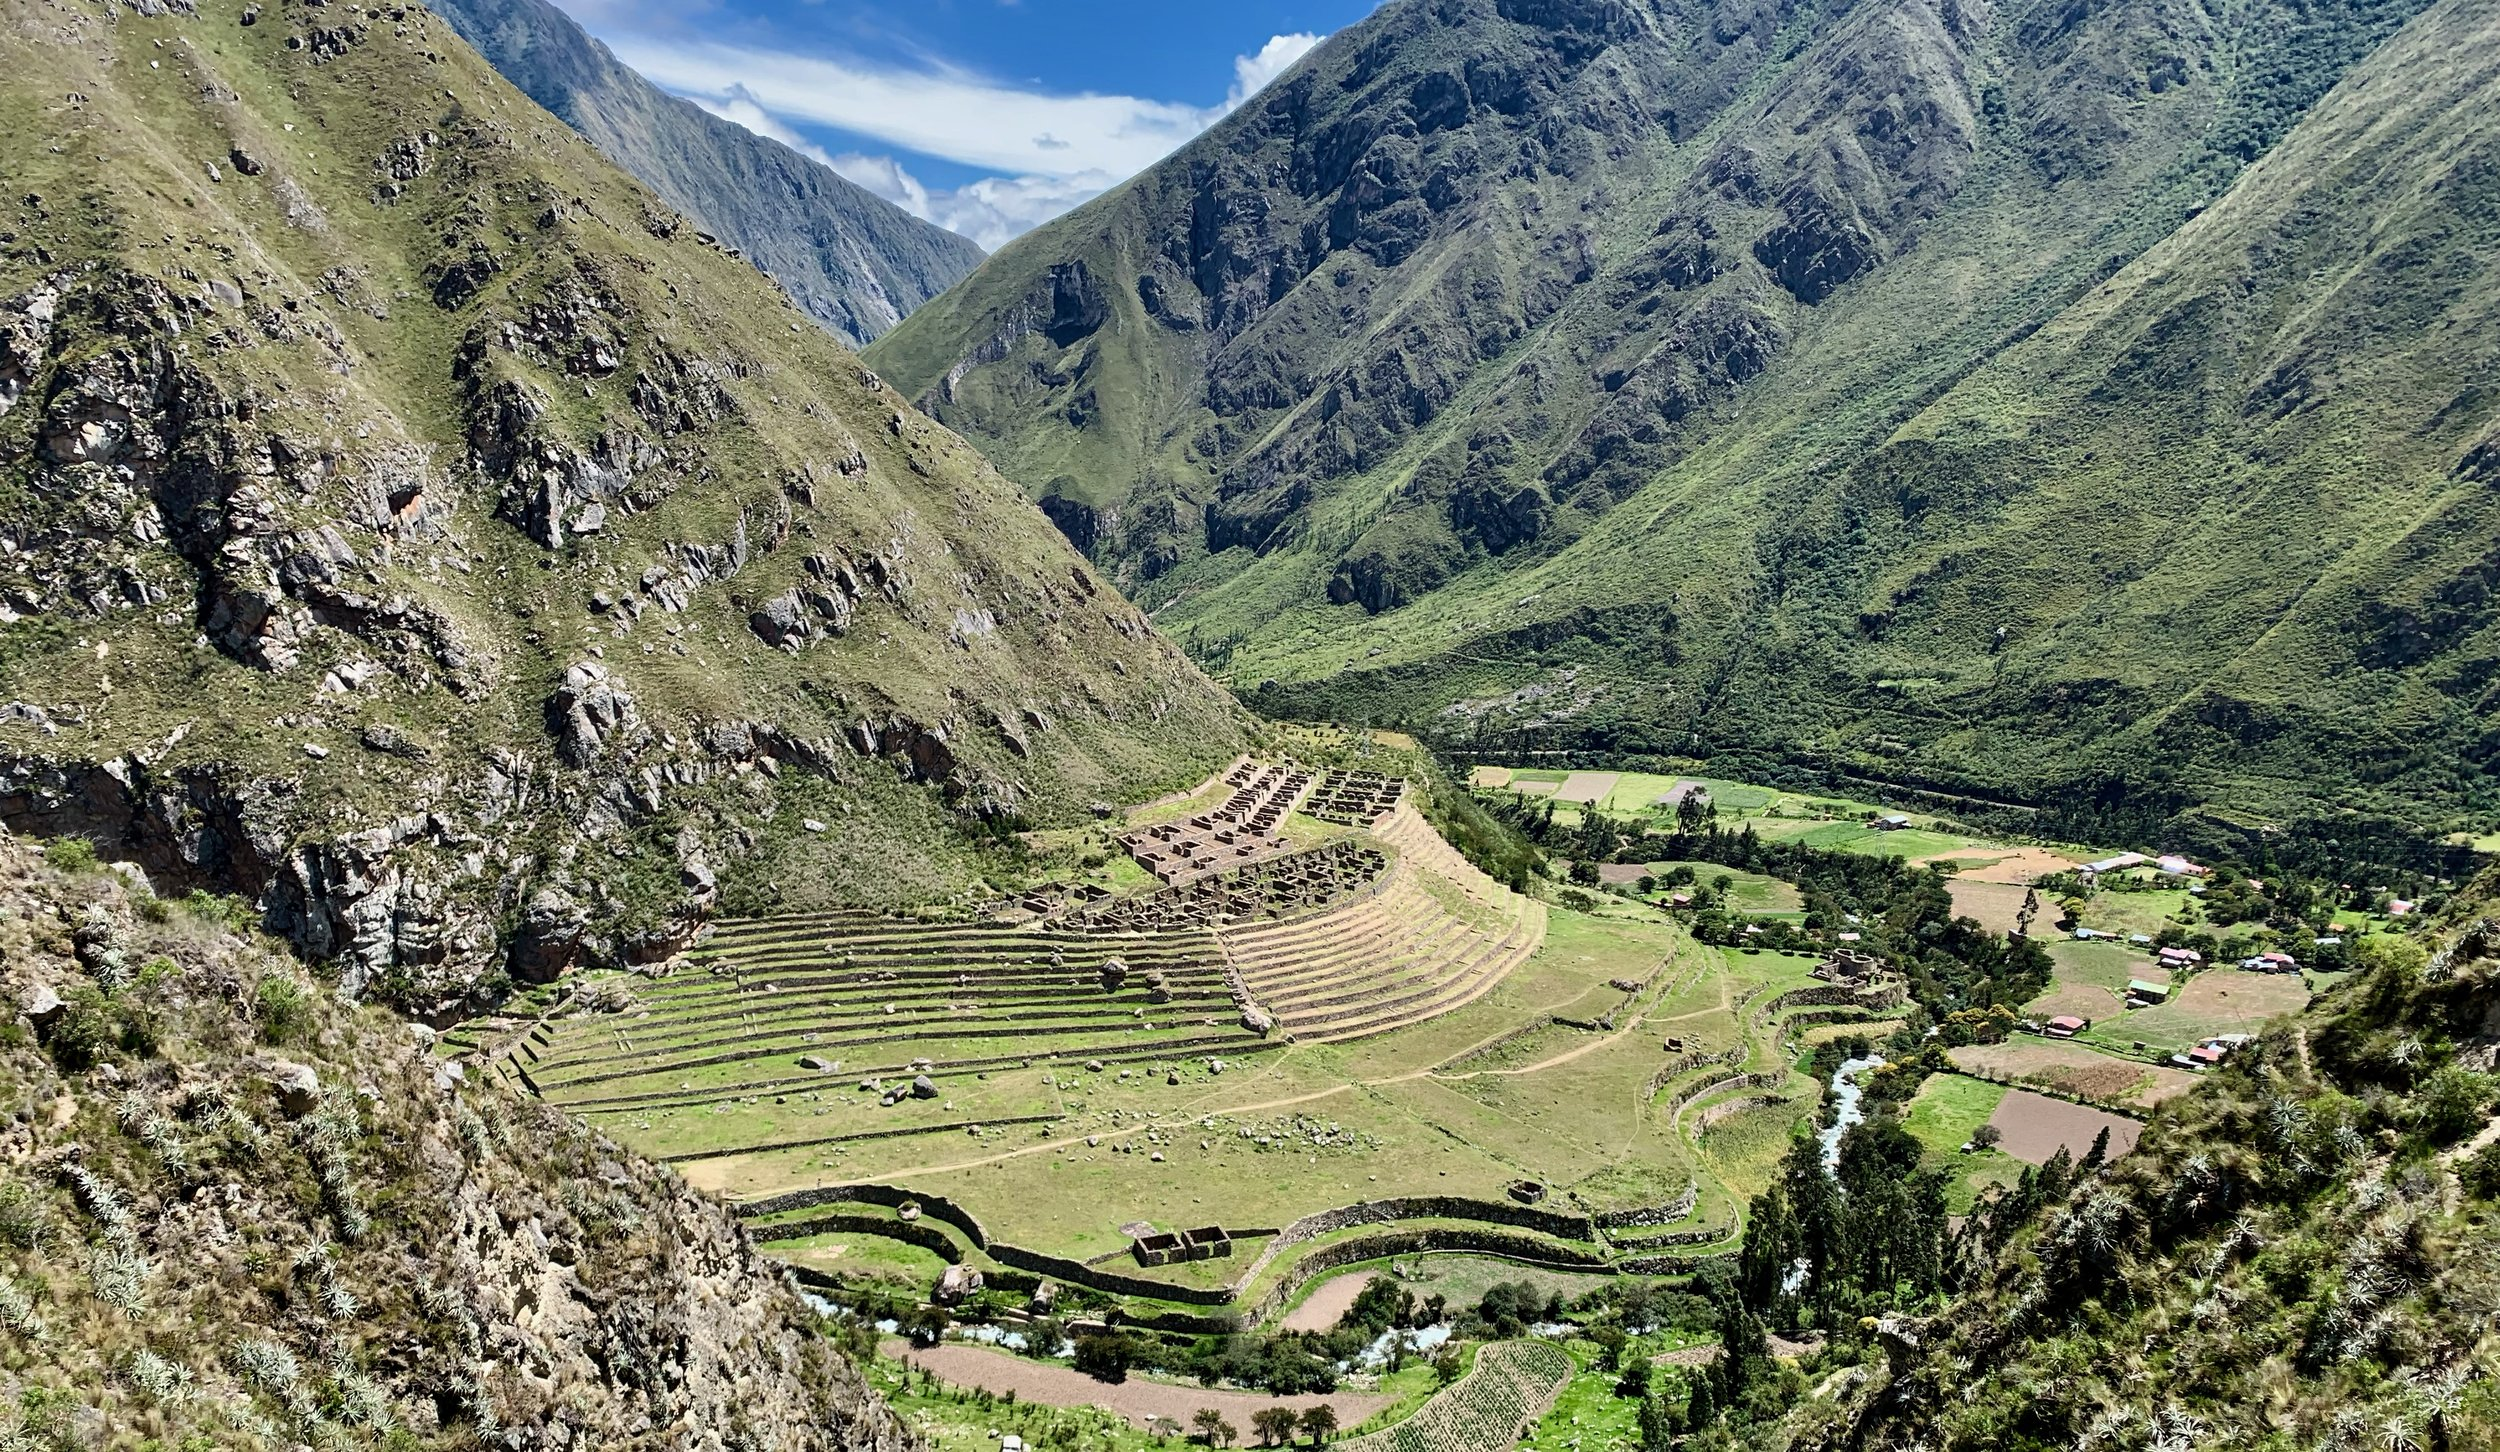 The view of Llactapata from across the river. When the Inca knew the Spanish were to take power of their lands, they blockaded this place by creating landslides to prevent access by trail.